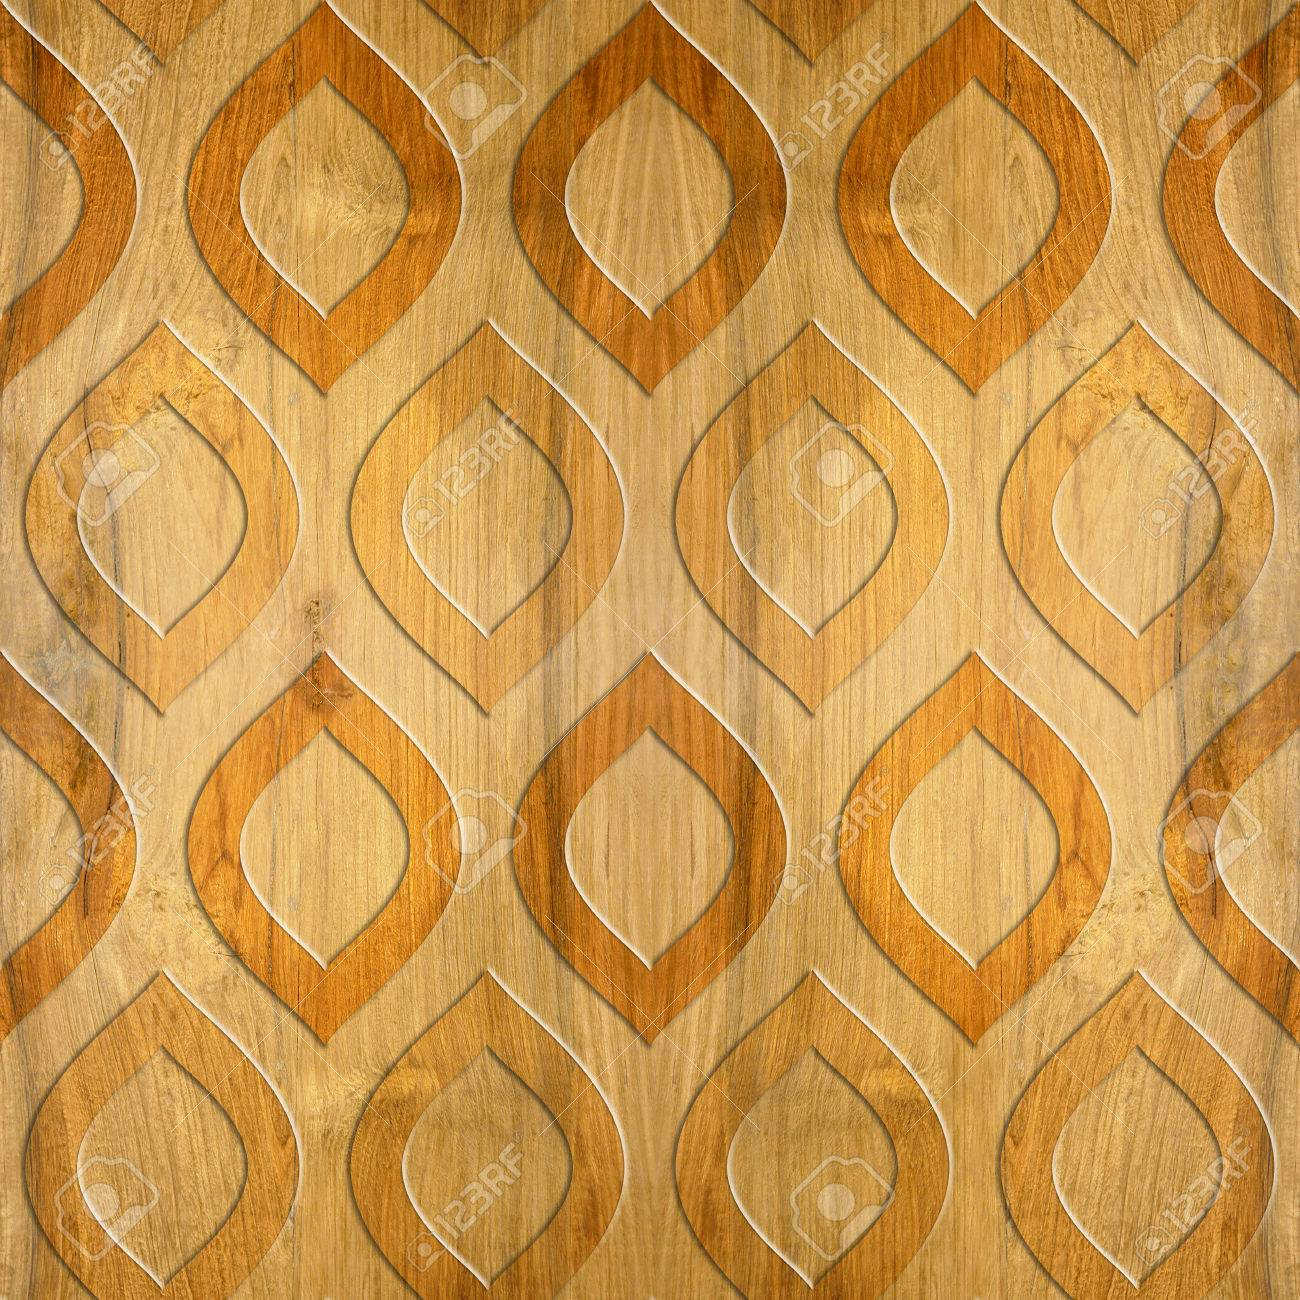 Oriental Decorative Pattern - Cherry Wood Texture - Seamless.. Stock ...